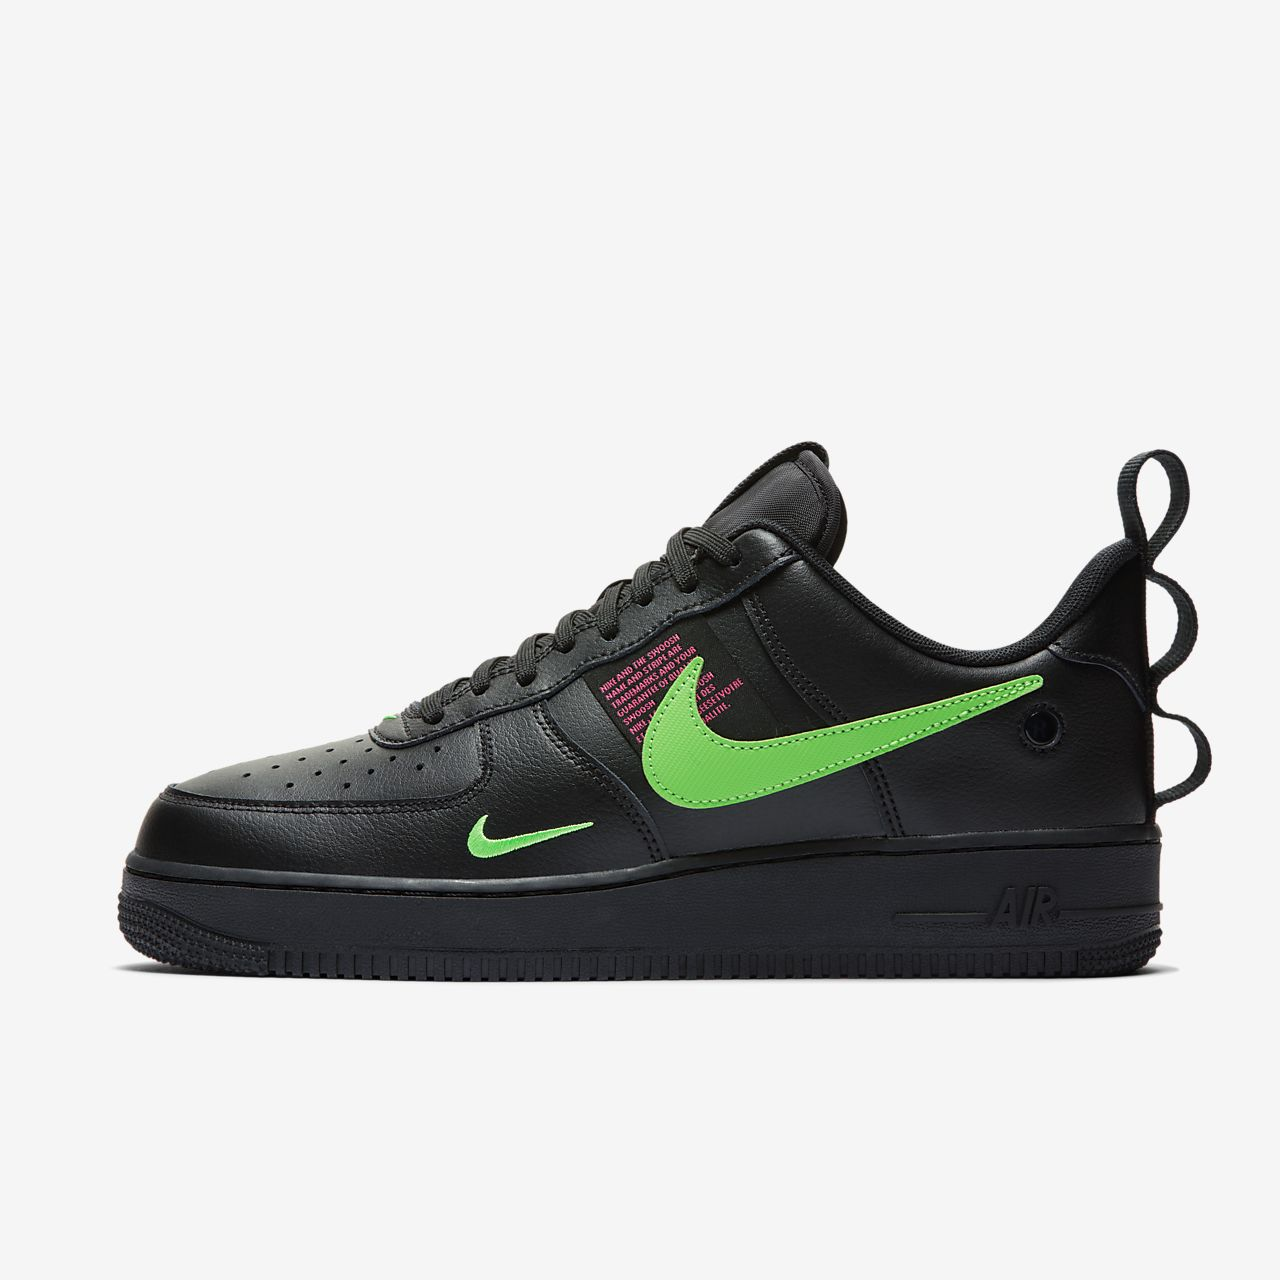 first look best authentic online store Chaussure Nike Air Force 1 LV8 UL pour Homme